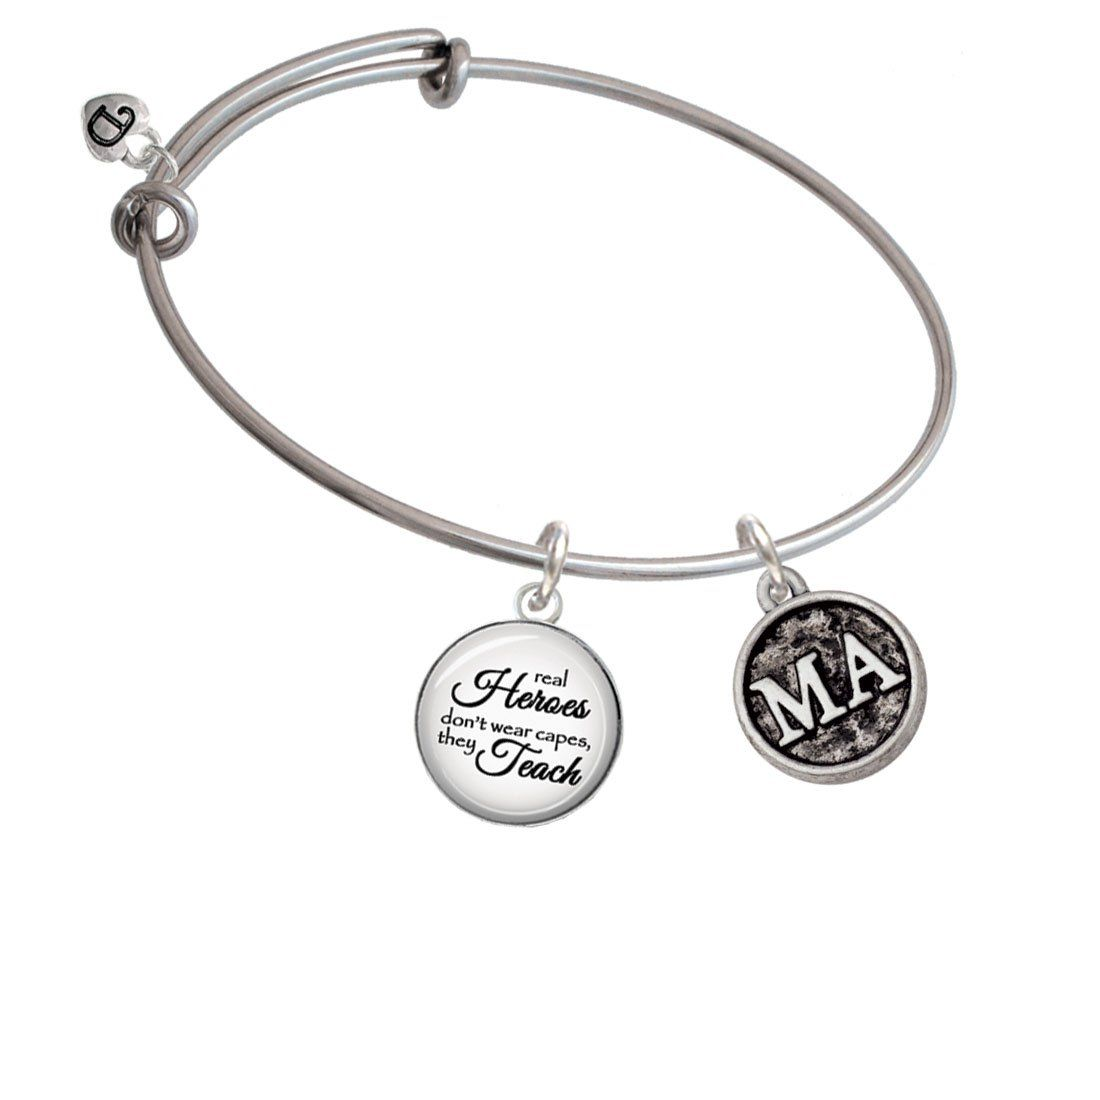 Silvertone Medical Assistant Caduceus Seal - MA Real Heroes Teach Bangle Bracelet. Silvertone Antiqued Medical Assistant Caduceus Seal - MA Glass Dome Real Heroes Don't Wear Capes They Teach Expandable Bangle Bracelet. Silvertone Medical Assistant Caduceus Seal - MA is approx. 0.78 x 0.66 x 0.15 (HxWxD) including loop. Antiqued Seal Design with MA on the front and a Caduceus on the back. Glass dome charm is approx: 0.9 x 0.7 x 0.2 inches (HxWxD) including loop. High quality printed paper...